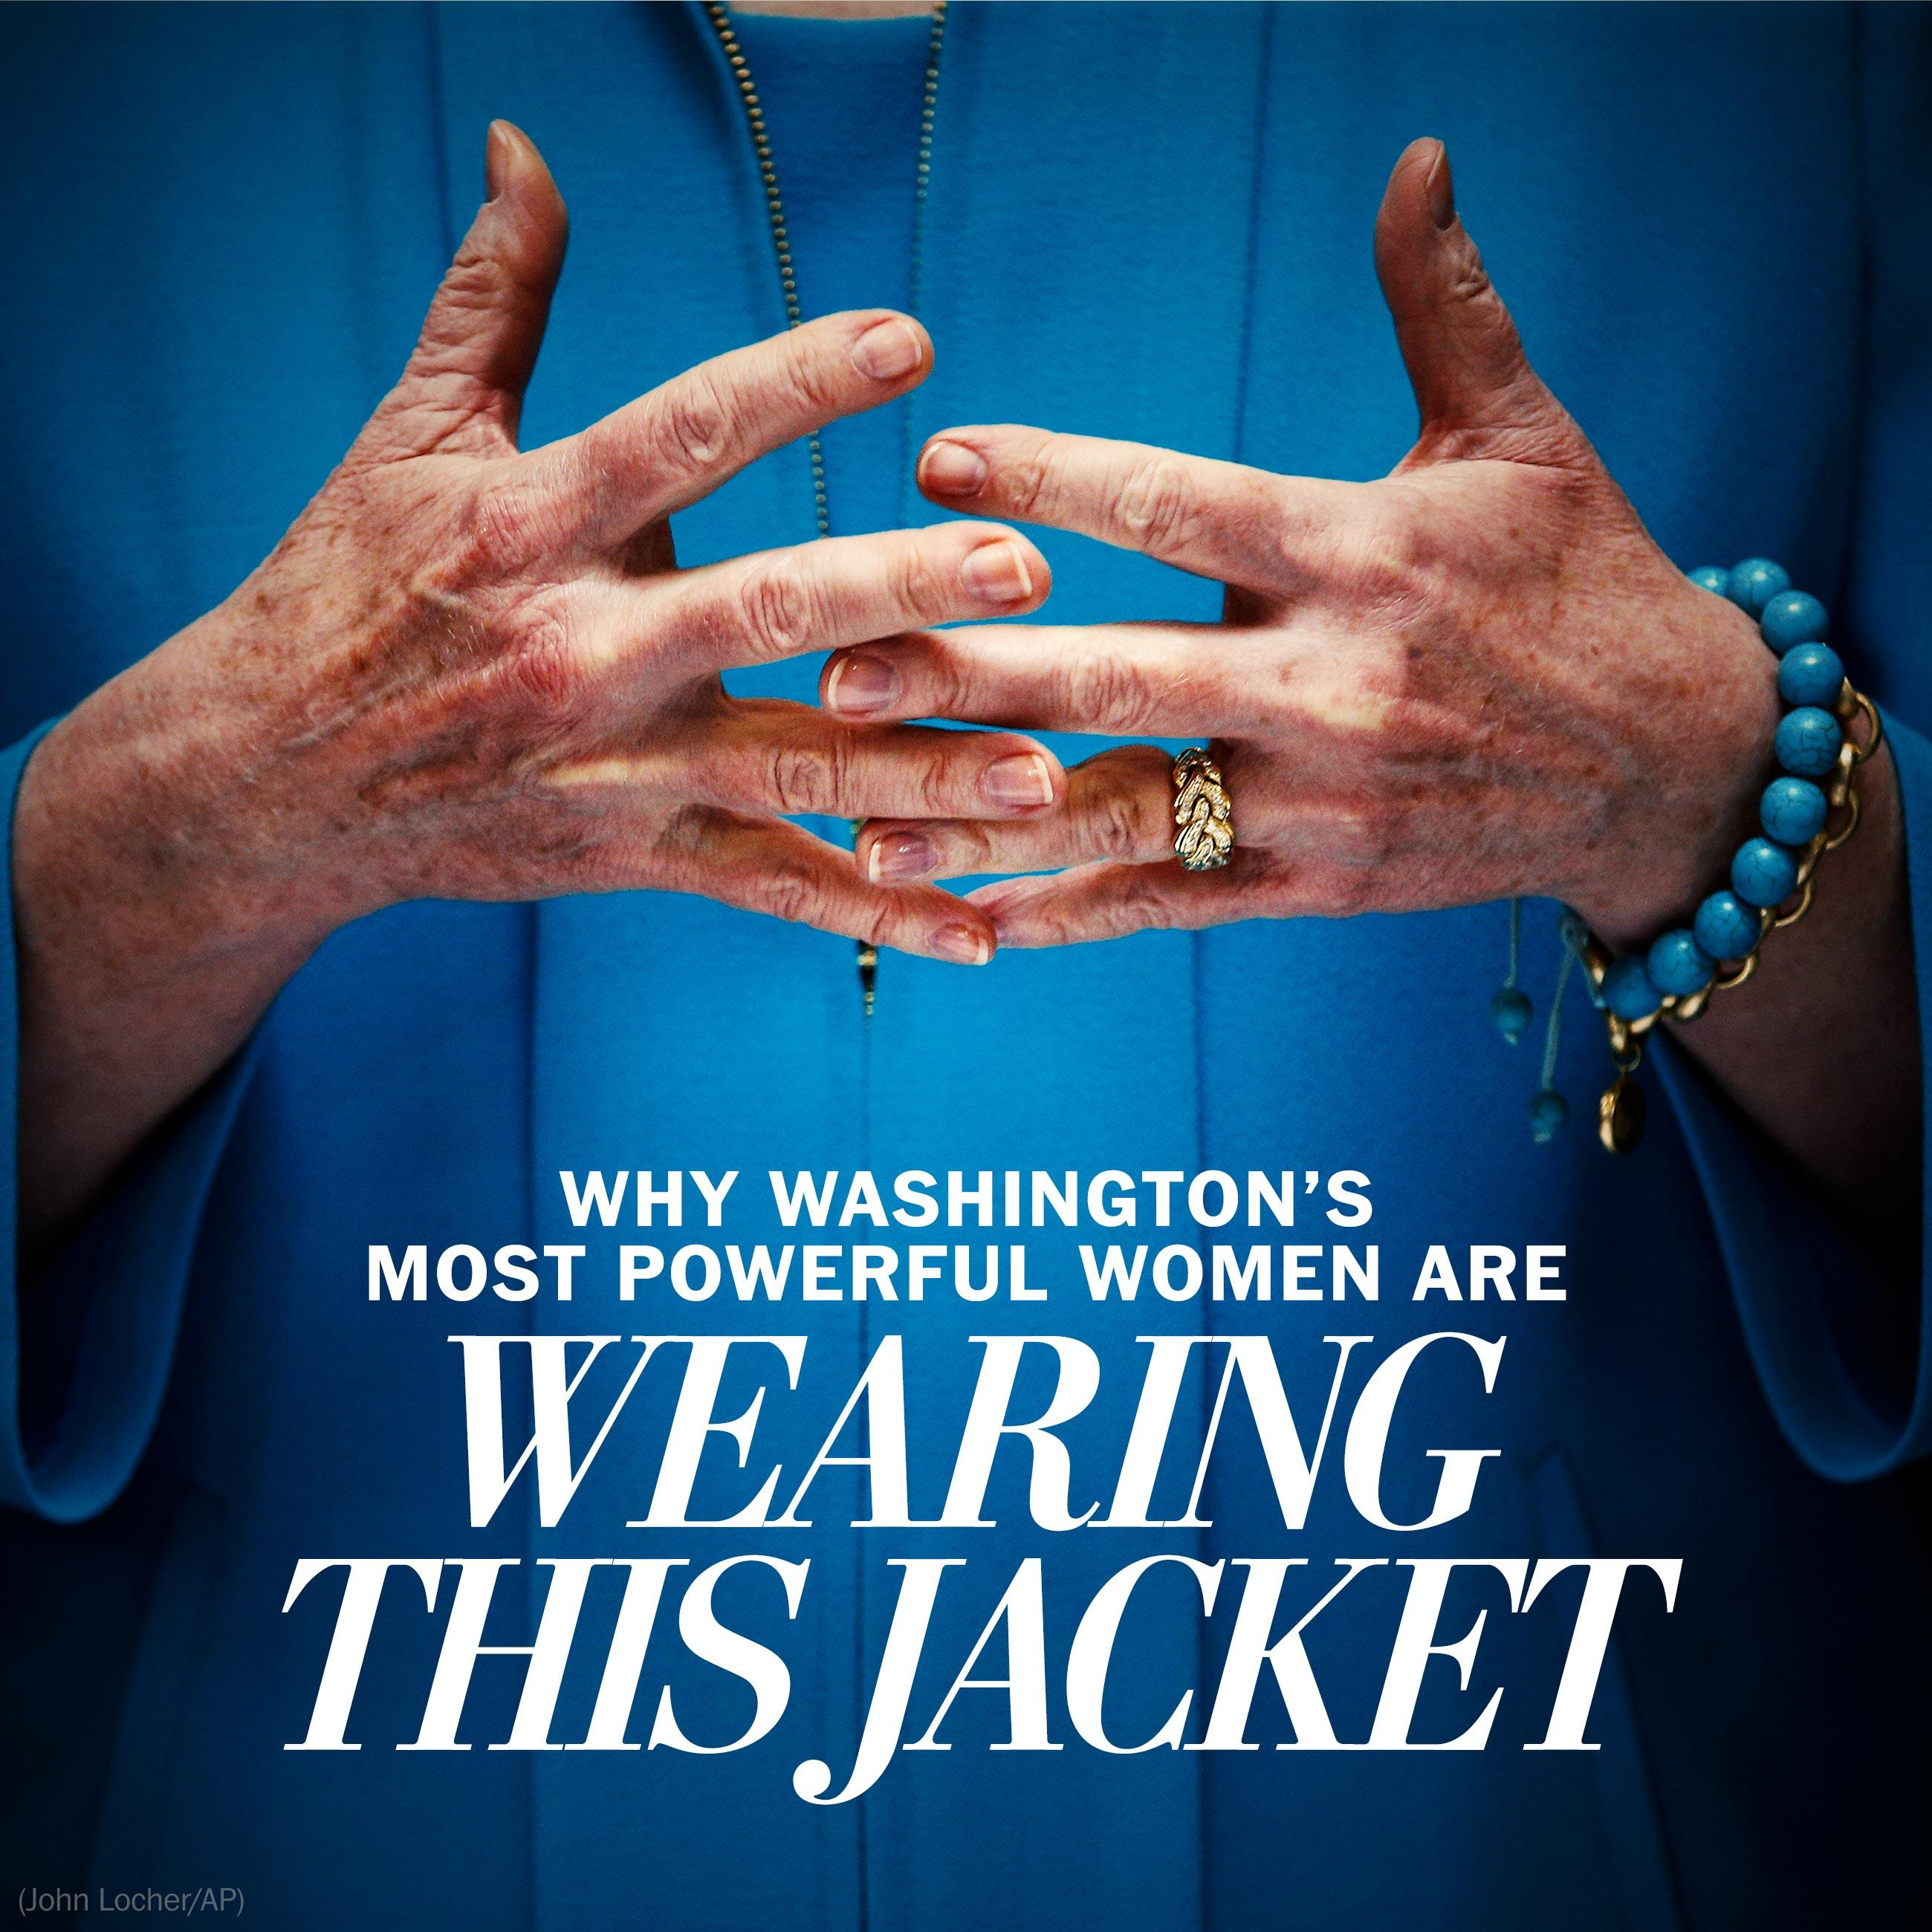 Why are Washington's most powerful women all wearing this jacket?